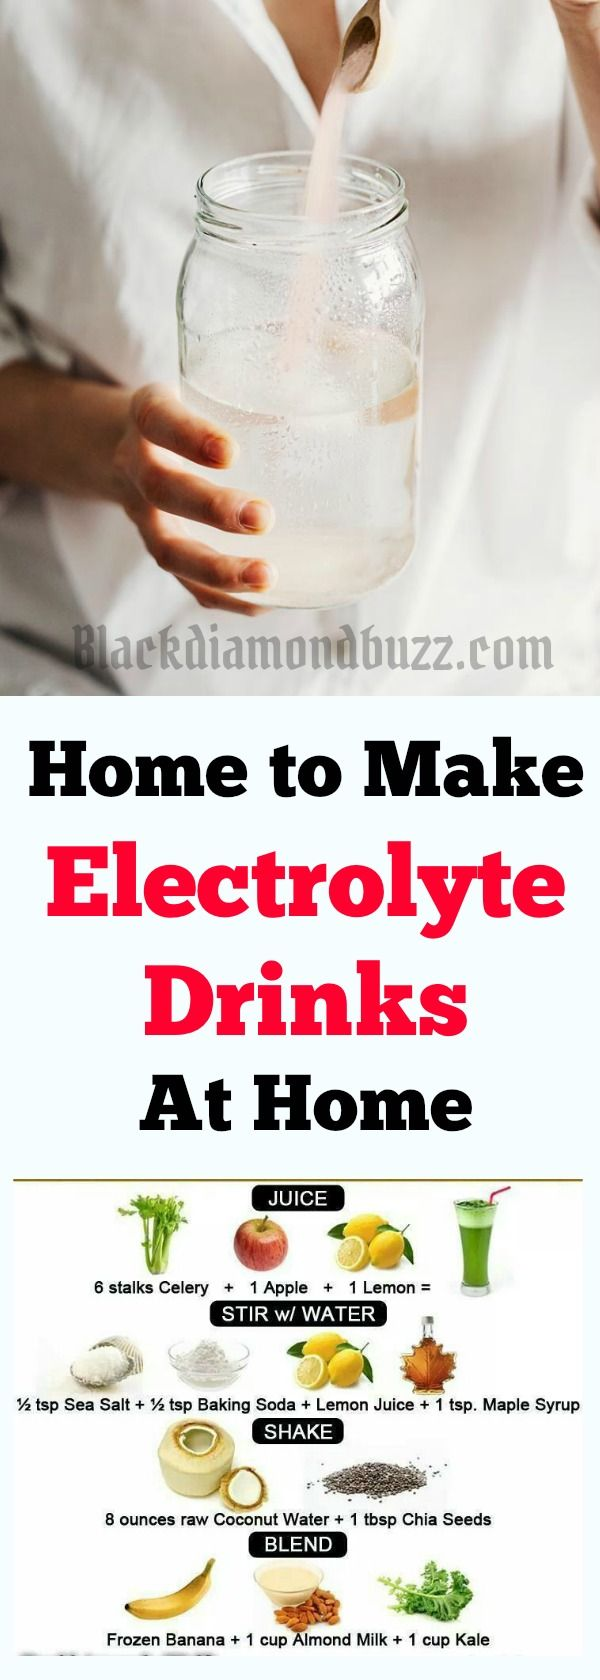 Home to Make Electrolyte Drinks At Home Naturally : Sugar free, keto , low carb ,coconut water and Green teas